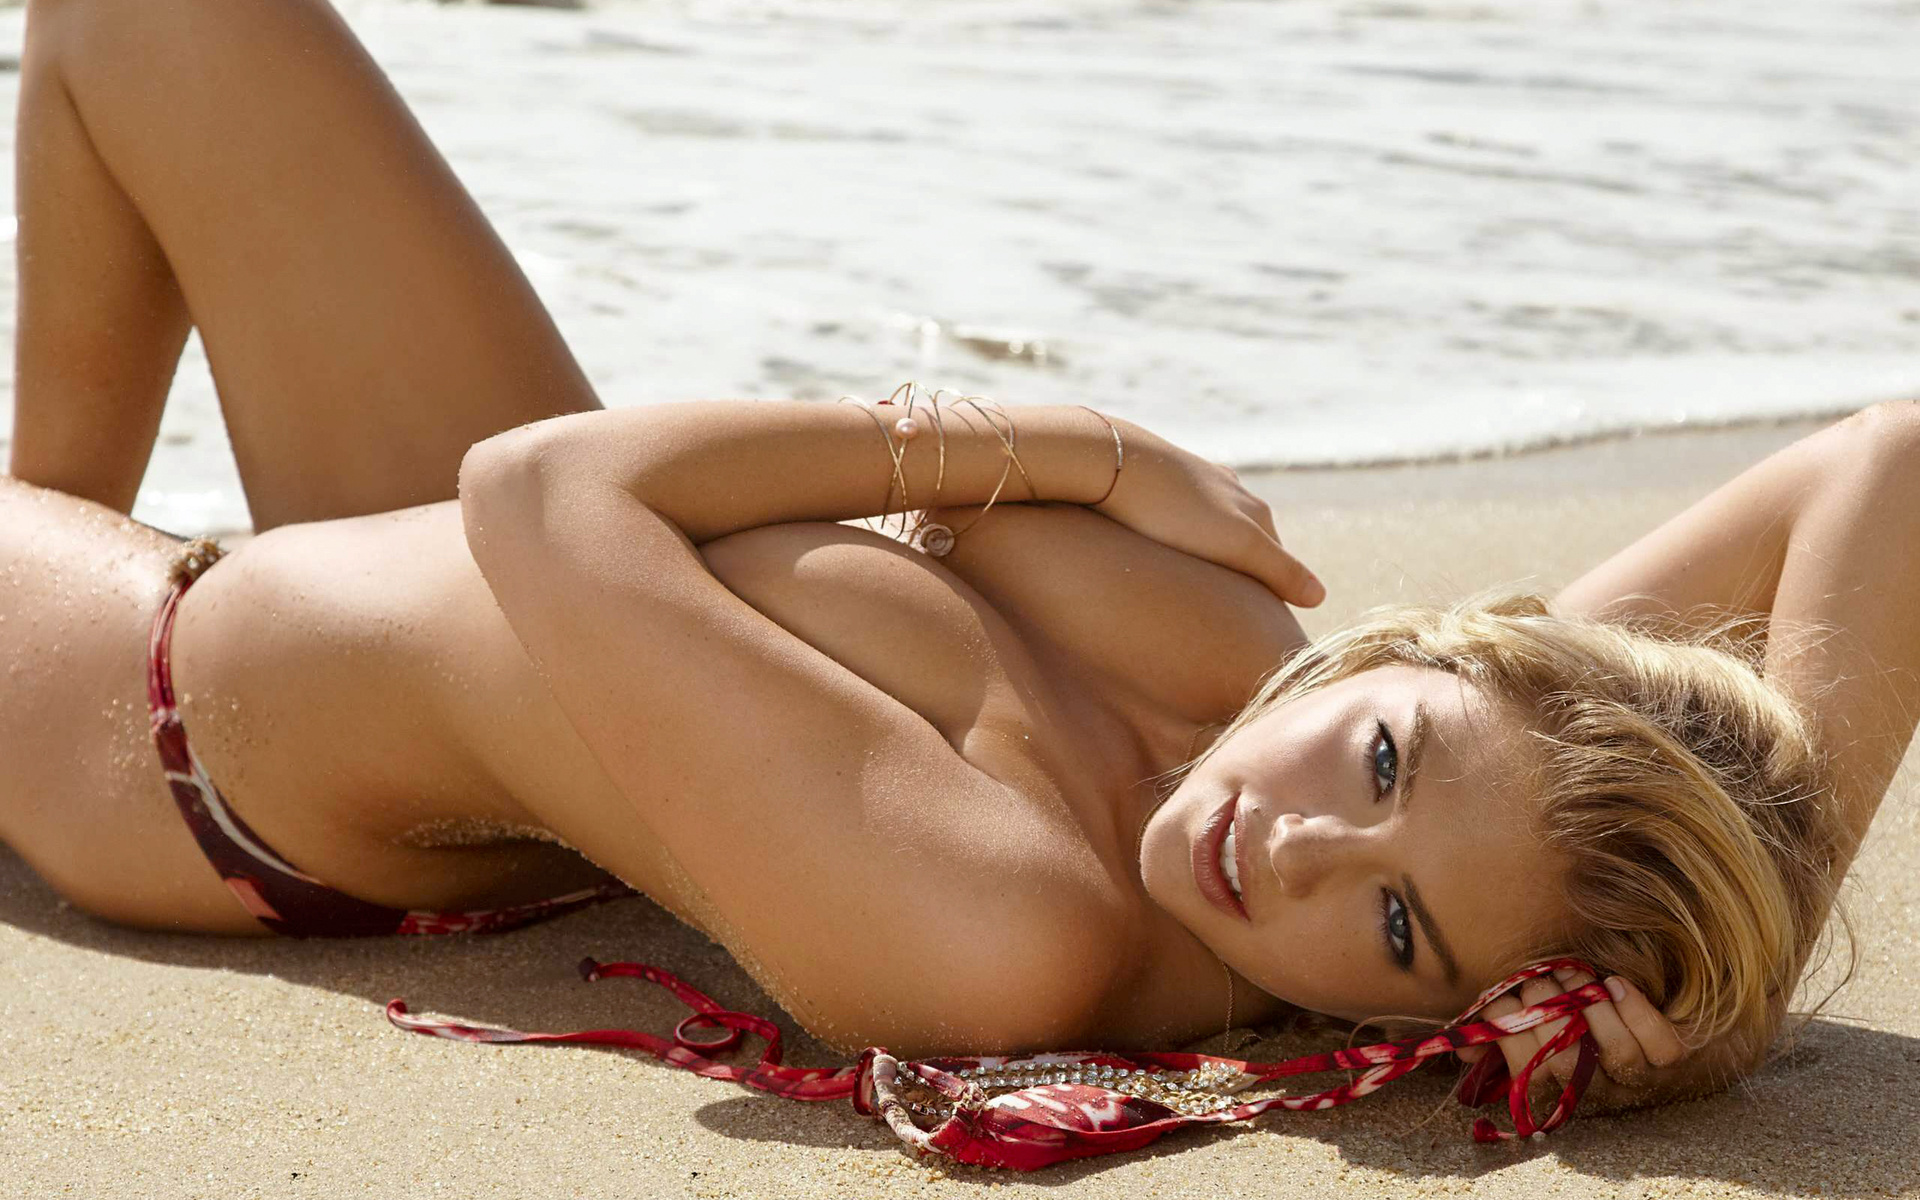 Sexiest women in the world pussy